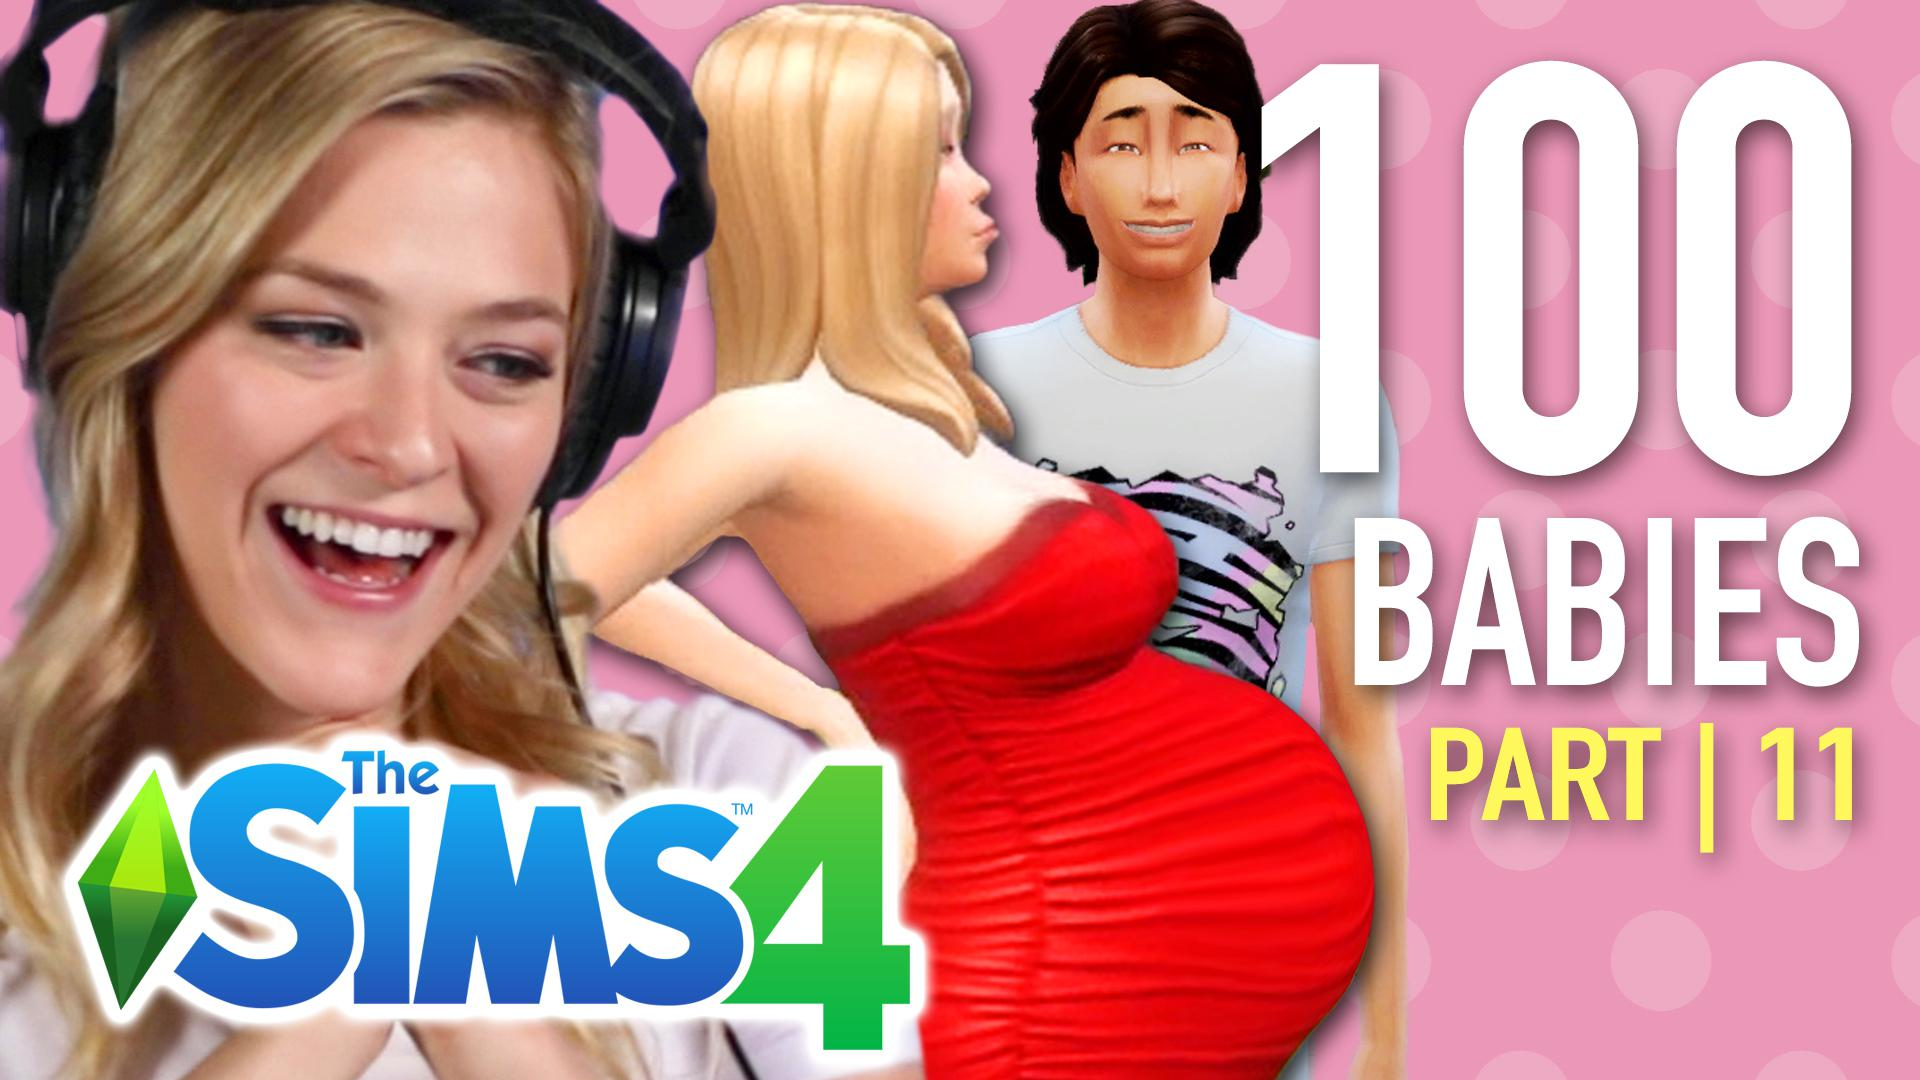 Multiplayer by BuzzFeed - Single Girl Tries The 100-Baby Challenge In The  Sims 4 | Part 11